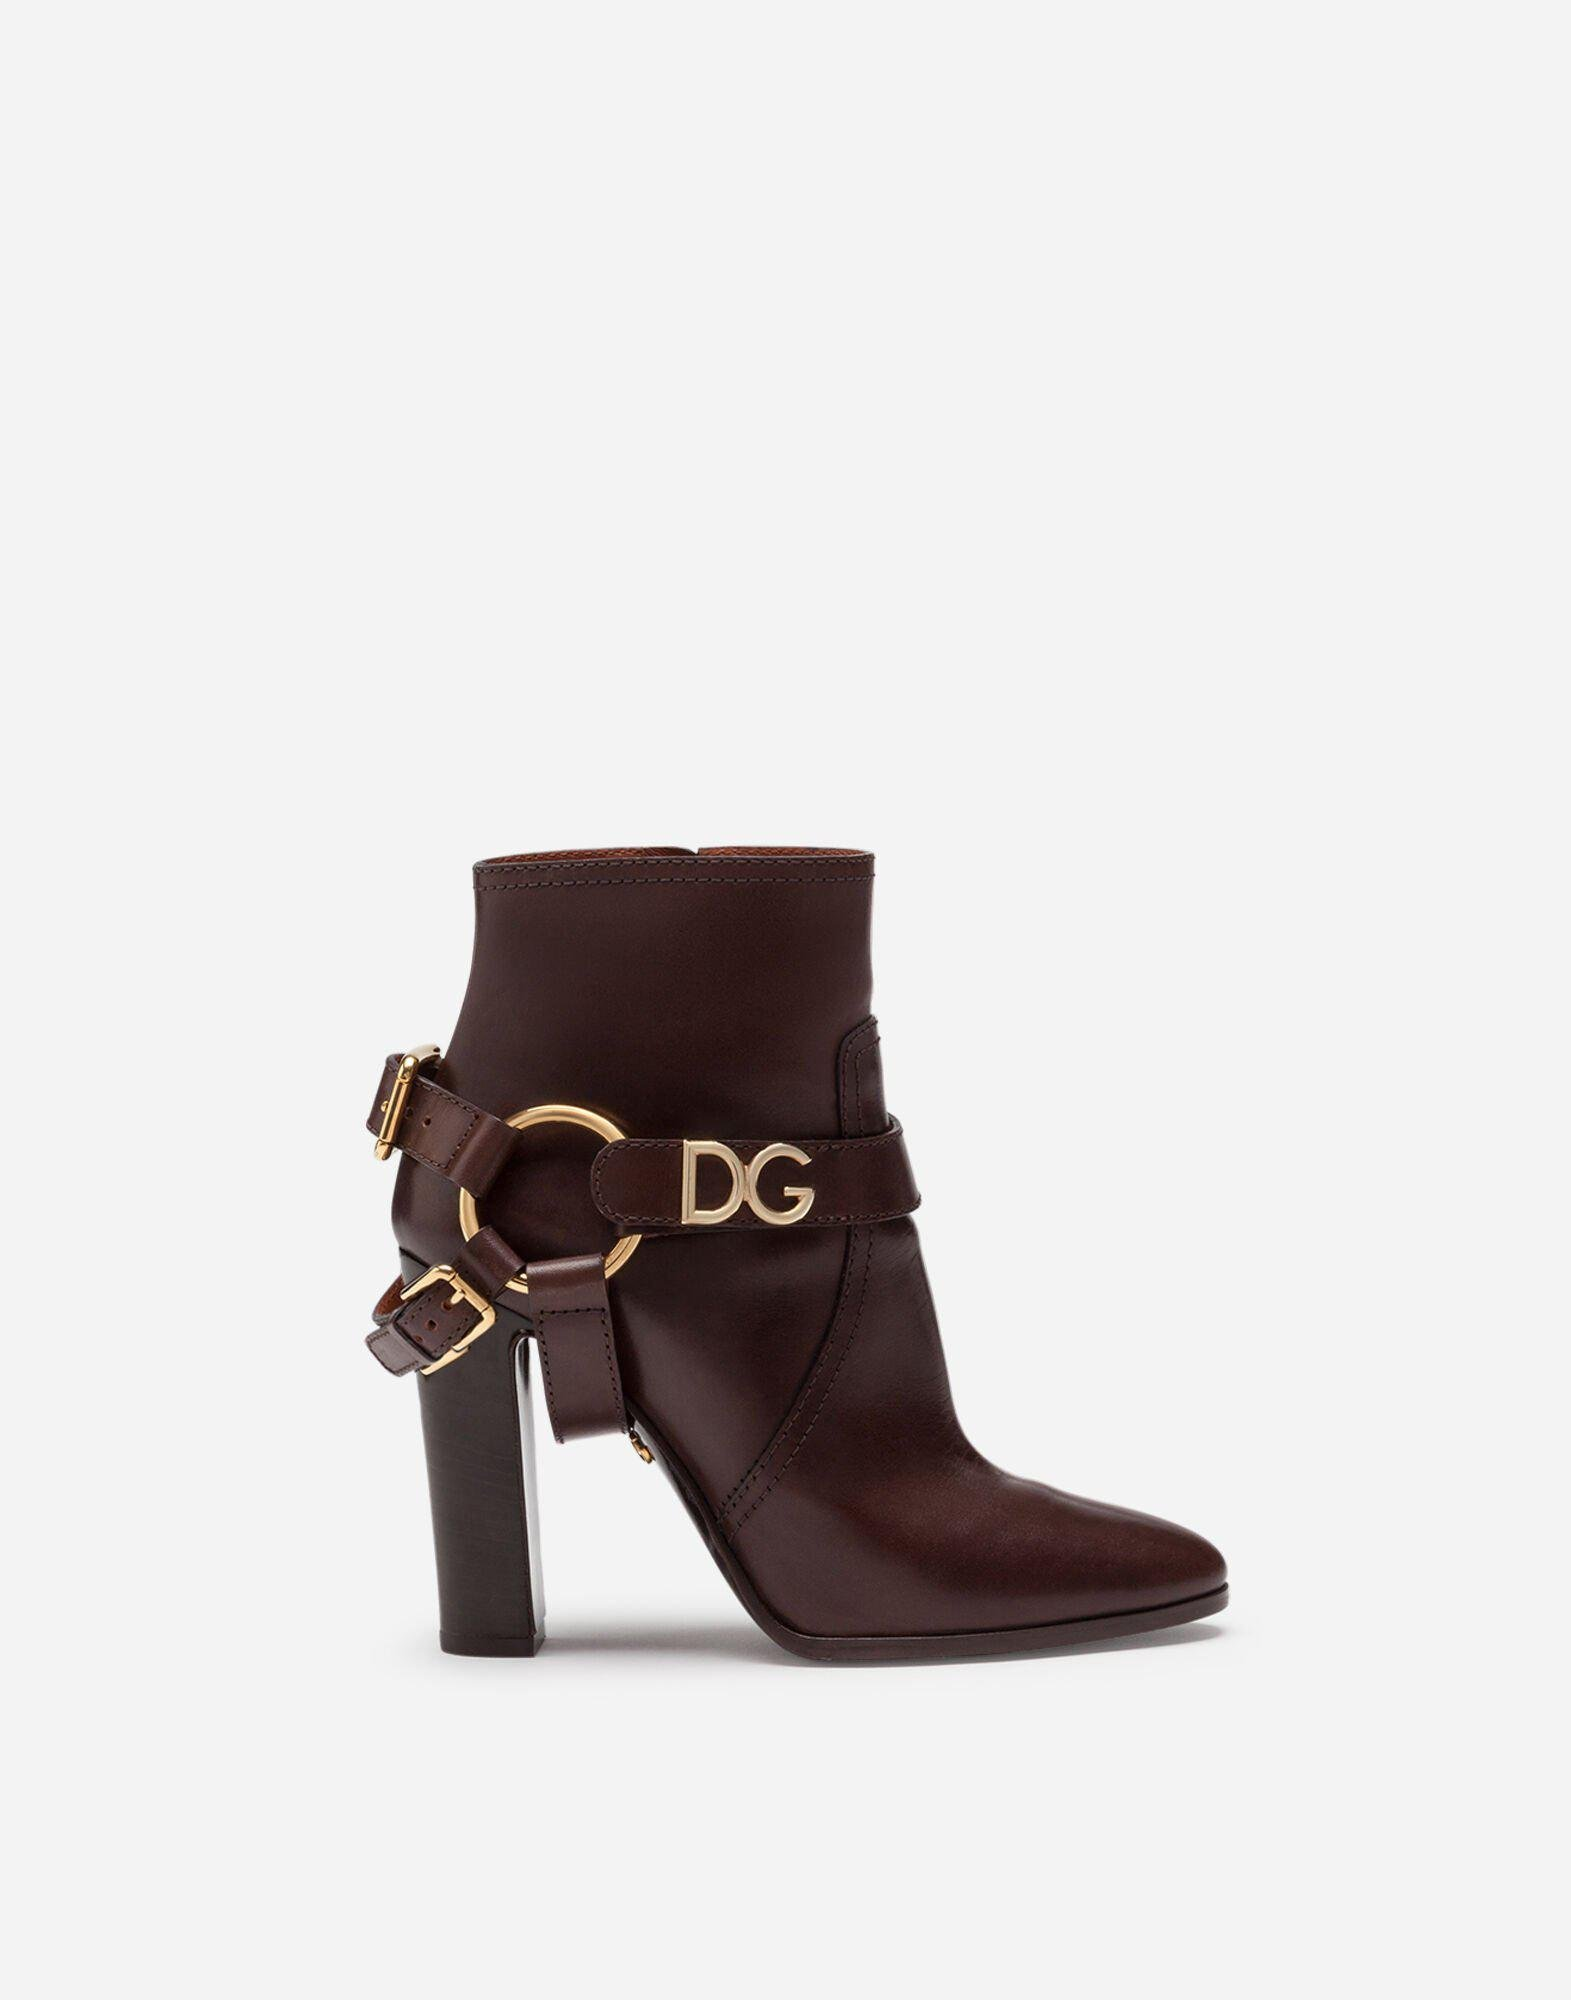 Ankle boots in cowhide with DG bracket logo 0